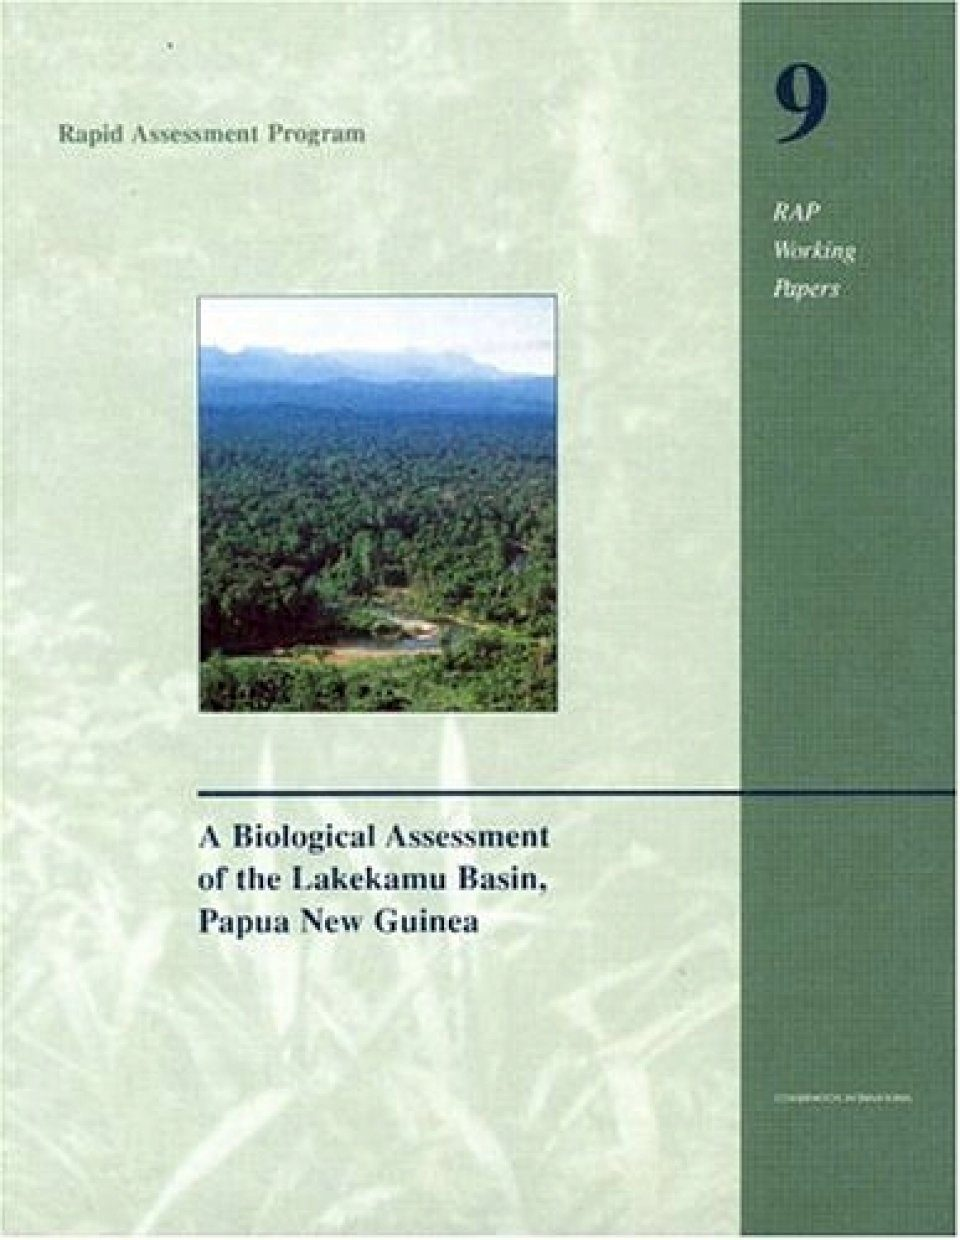 A Biological Assessment of the Lakekamu Basin, Papua New Guinea